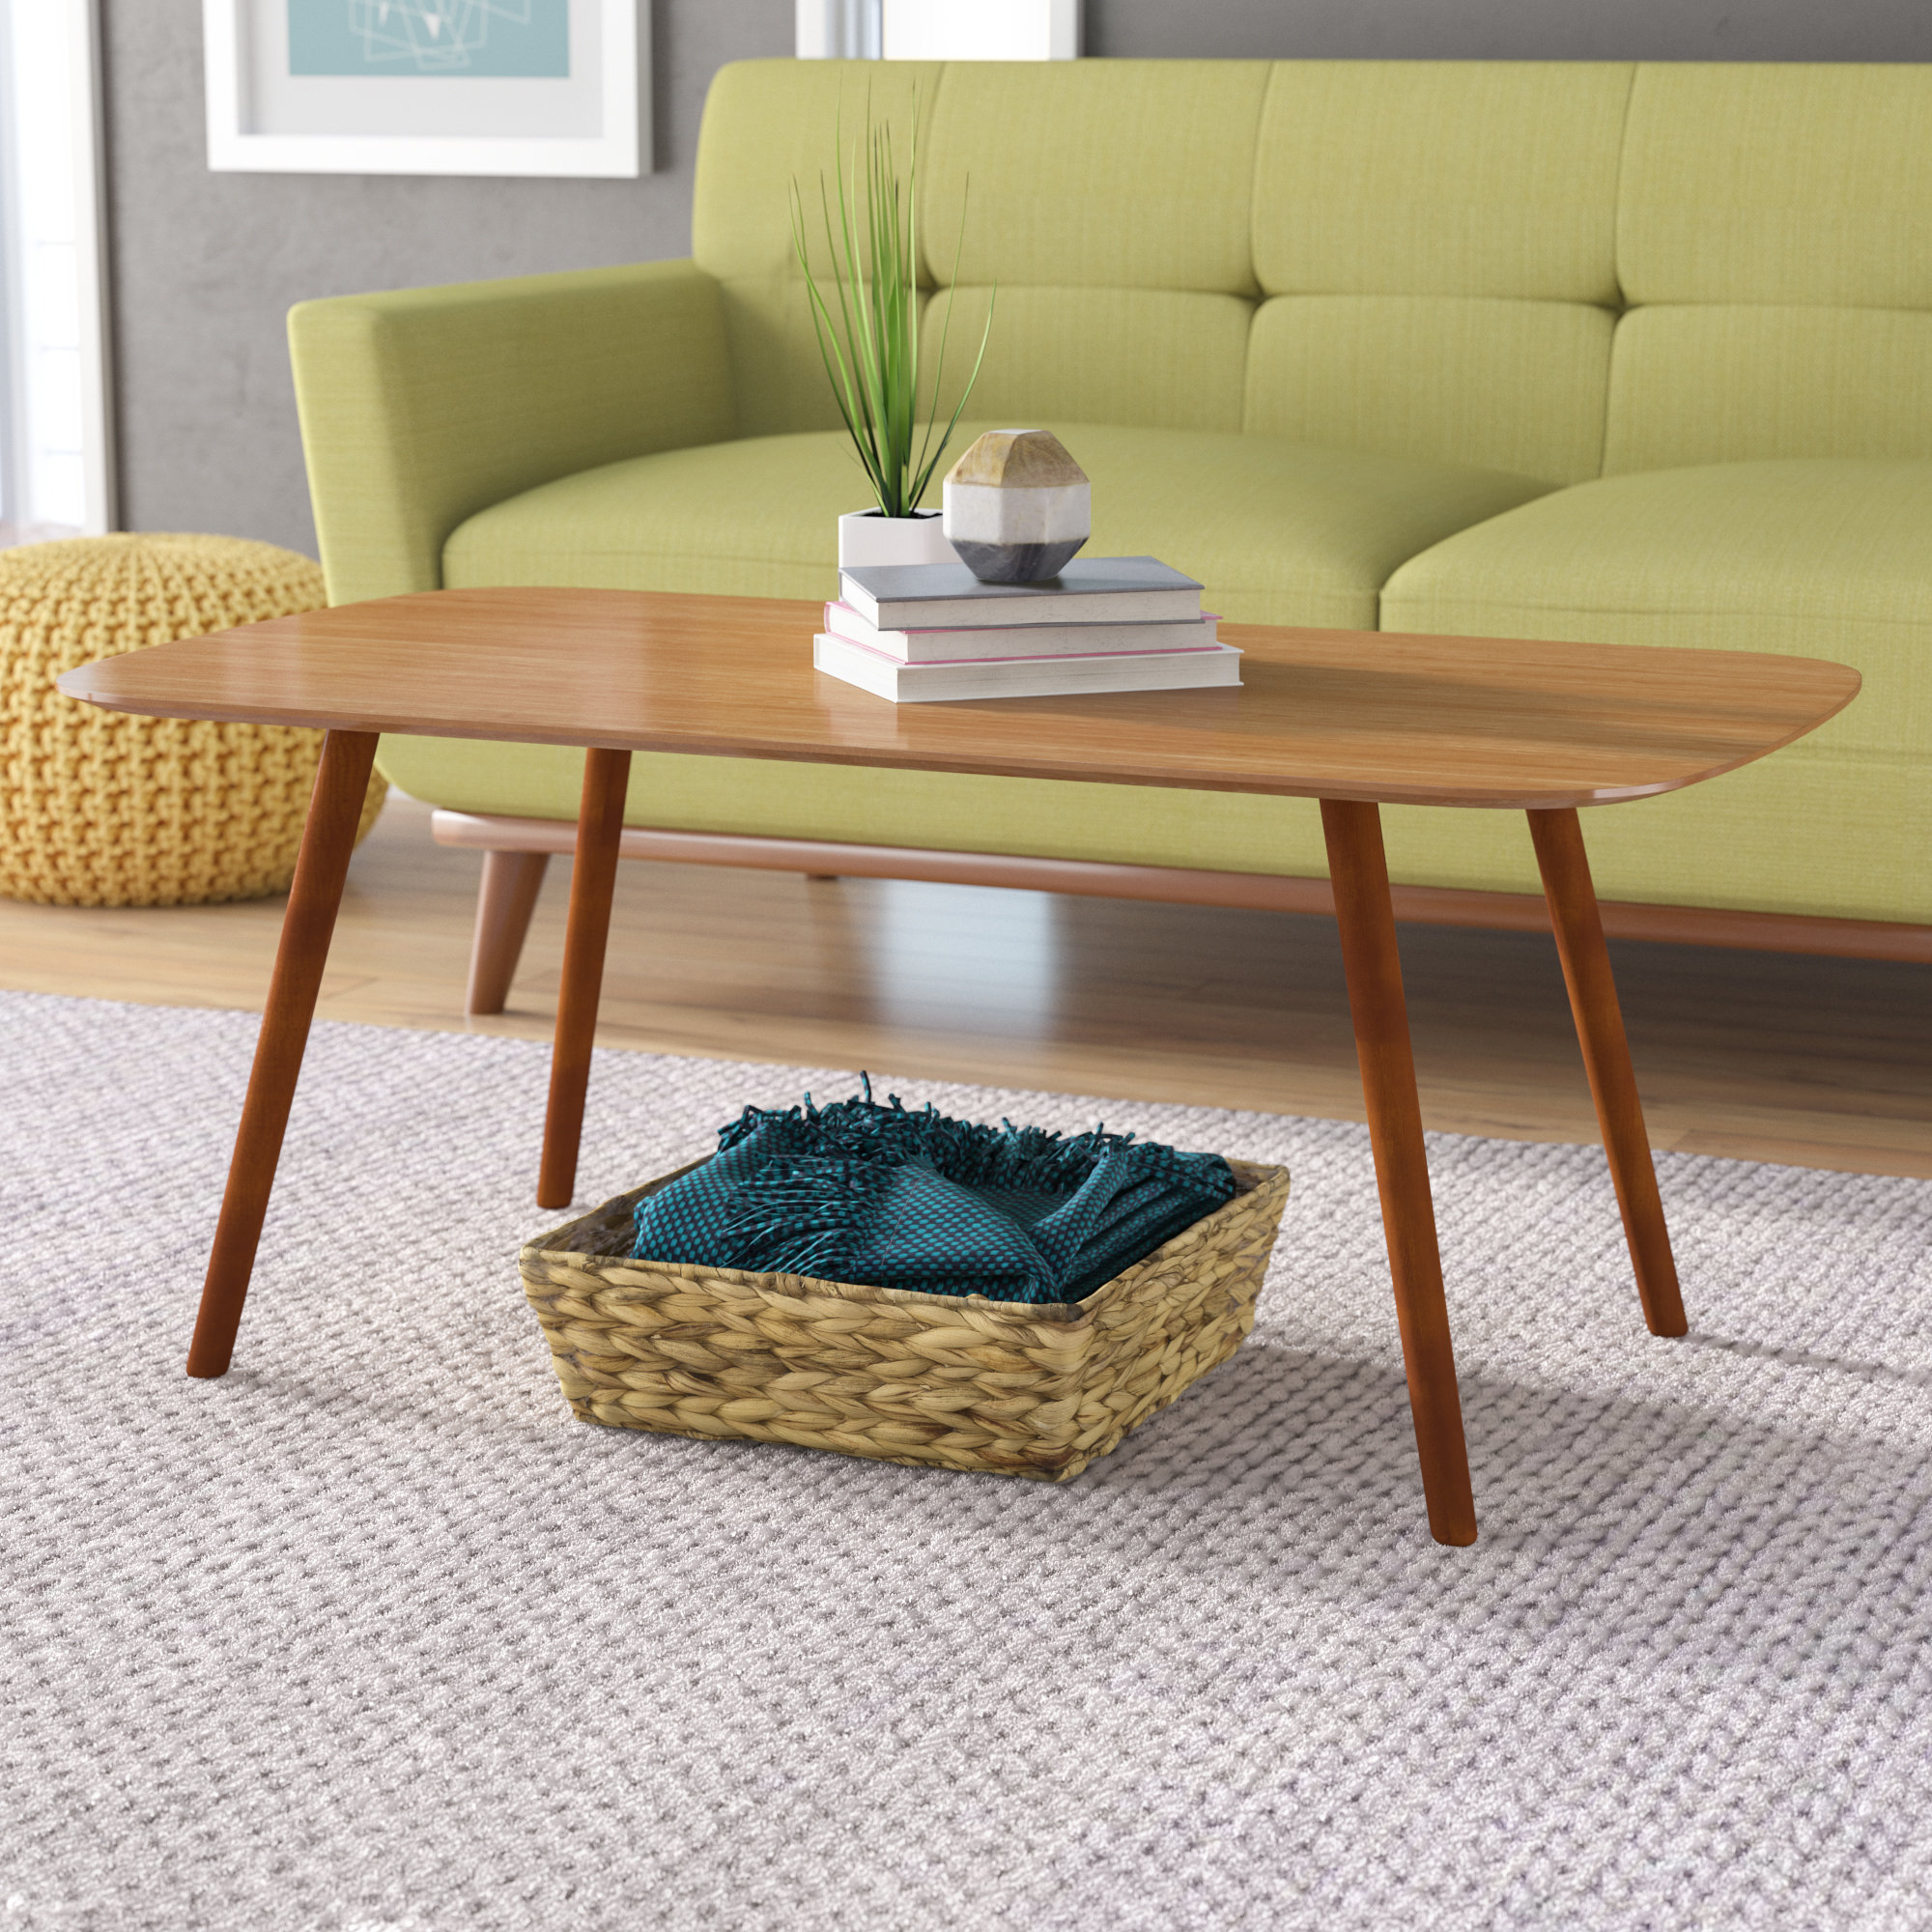 Popular Langley Street Creenagh Coffee Table & Reviews (View 15 of 20)